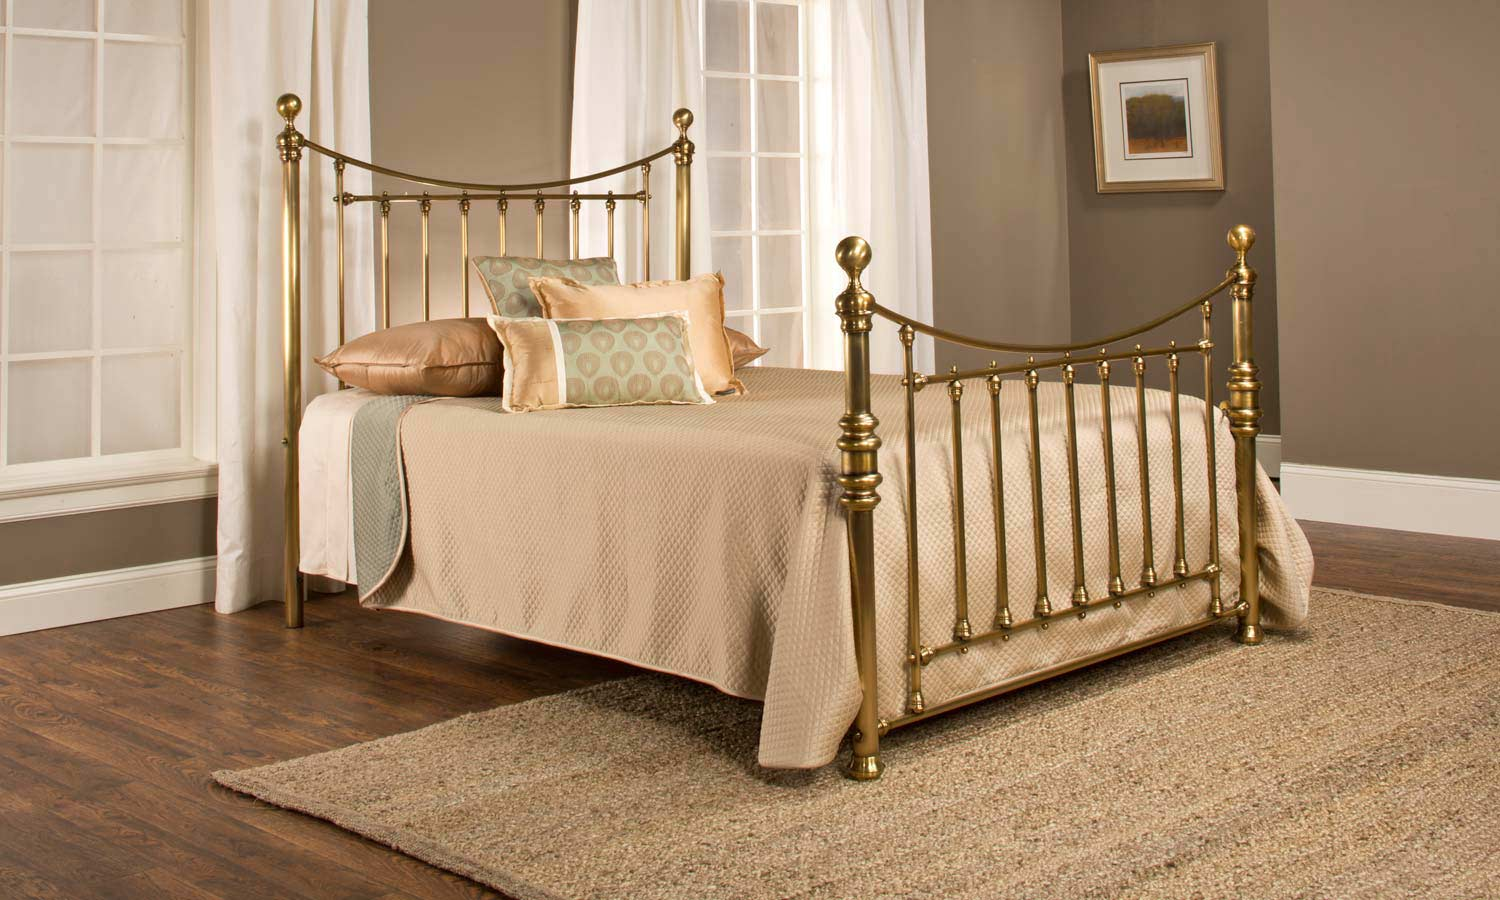 Hillsdale Old England Bed Antique Brass 1001 Bed